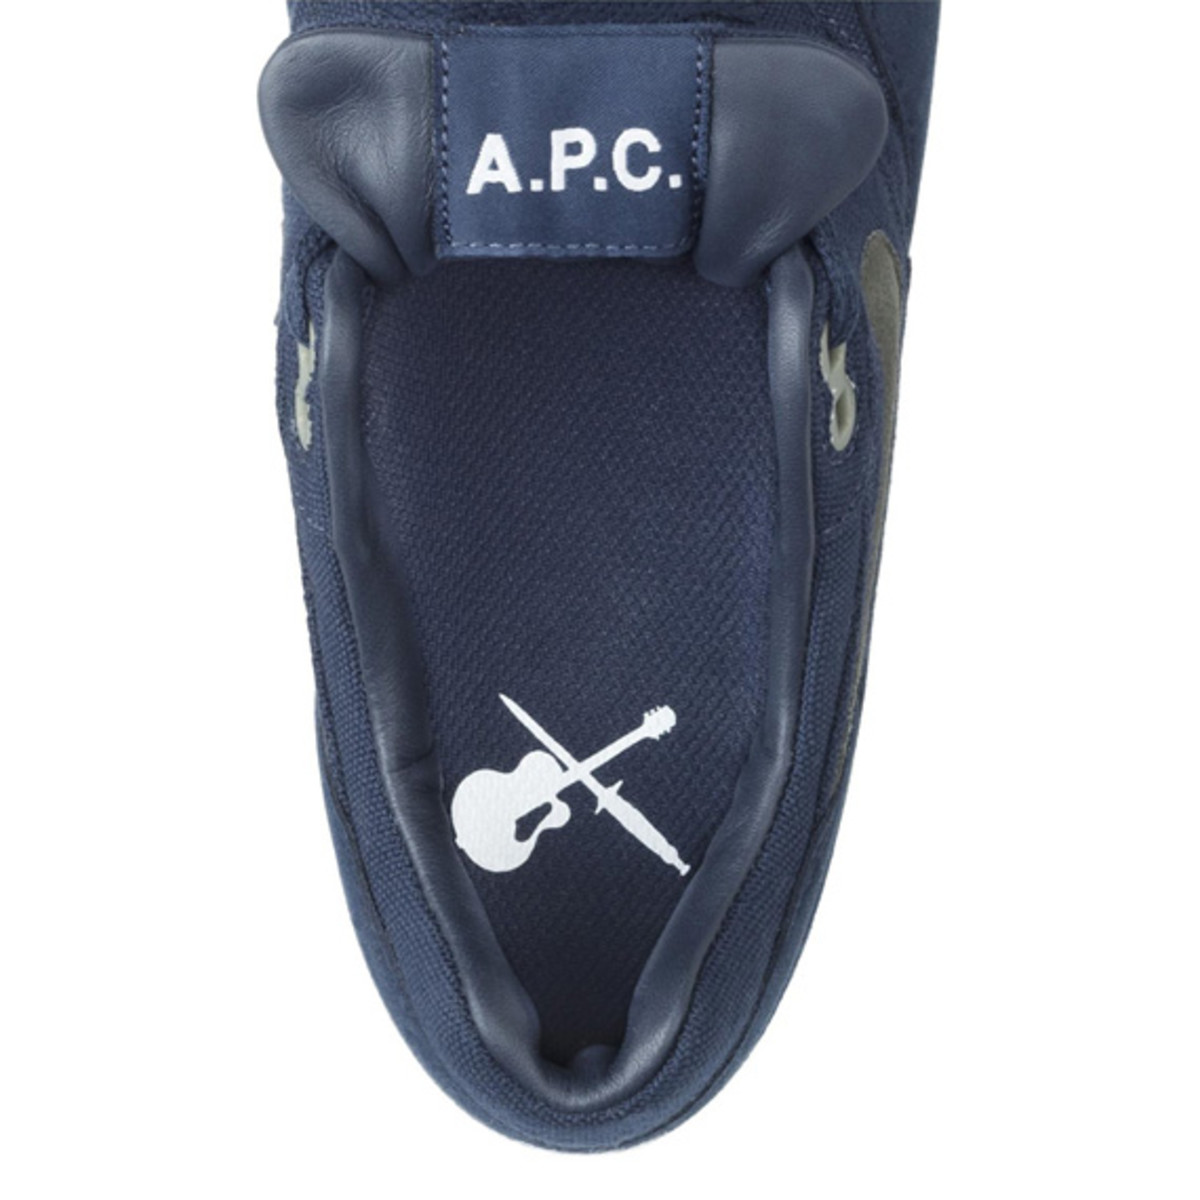 apc-nike-air-max-1-available-now-04